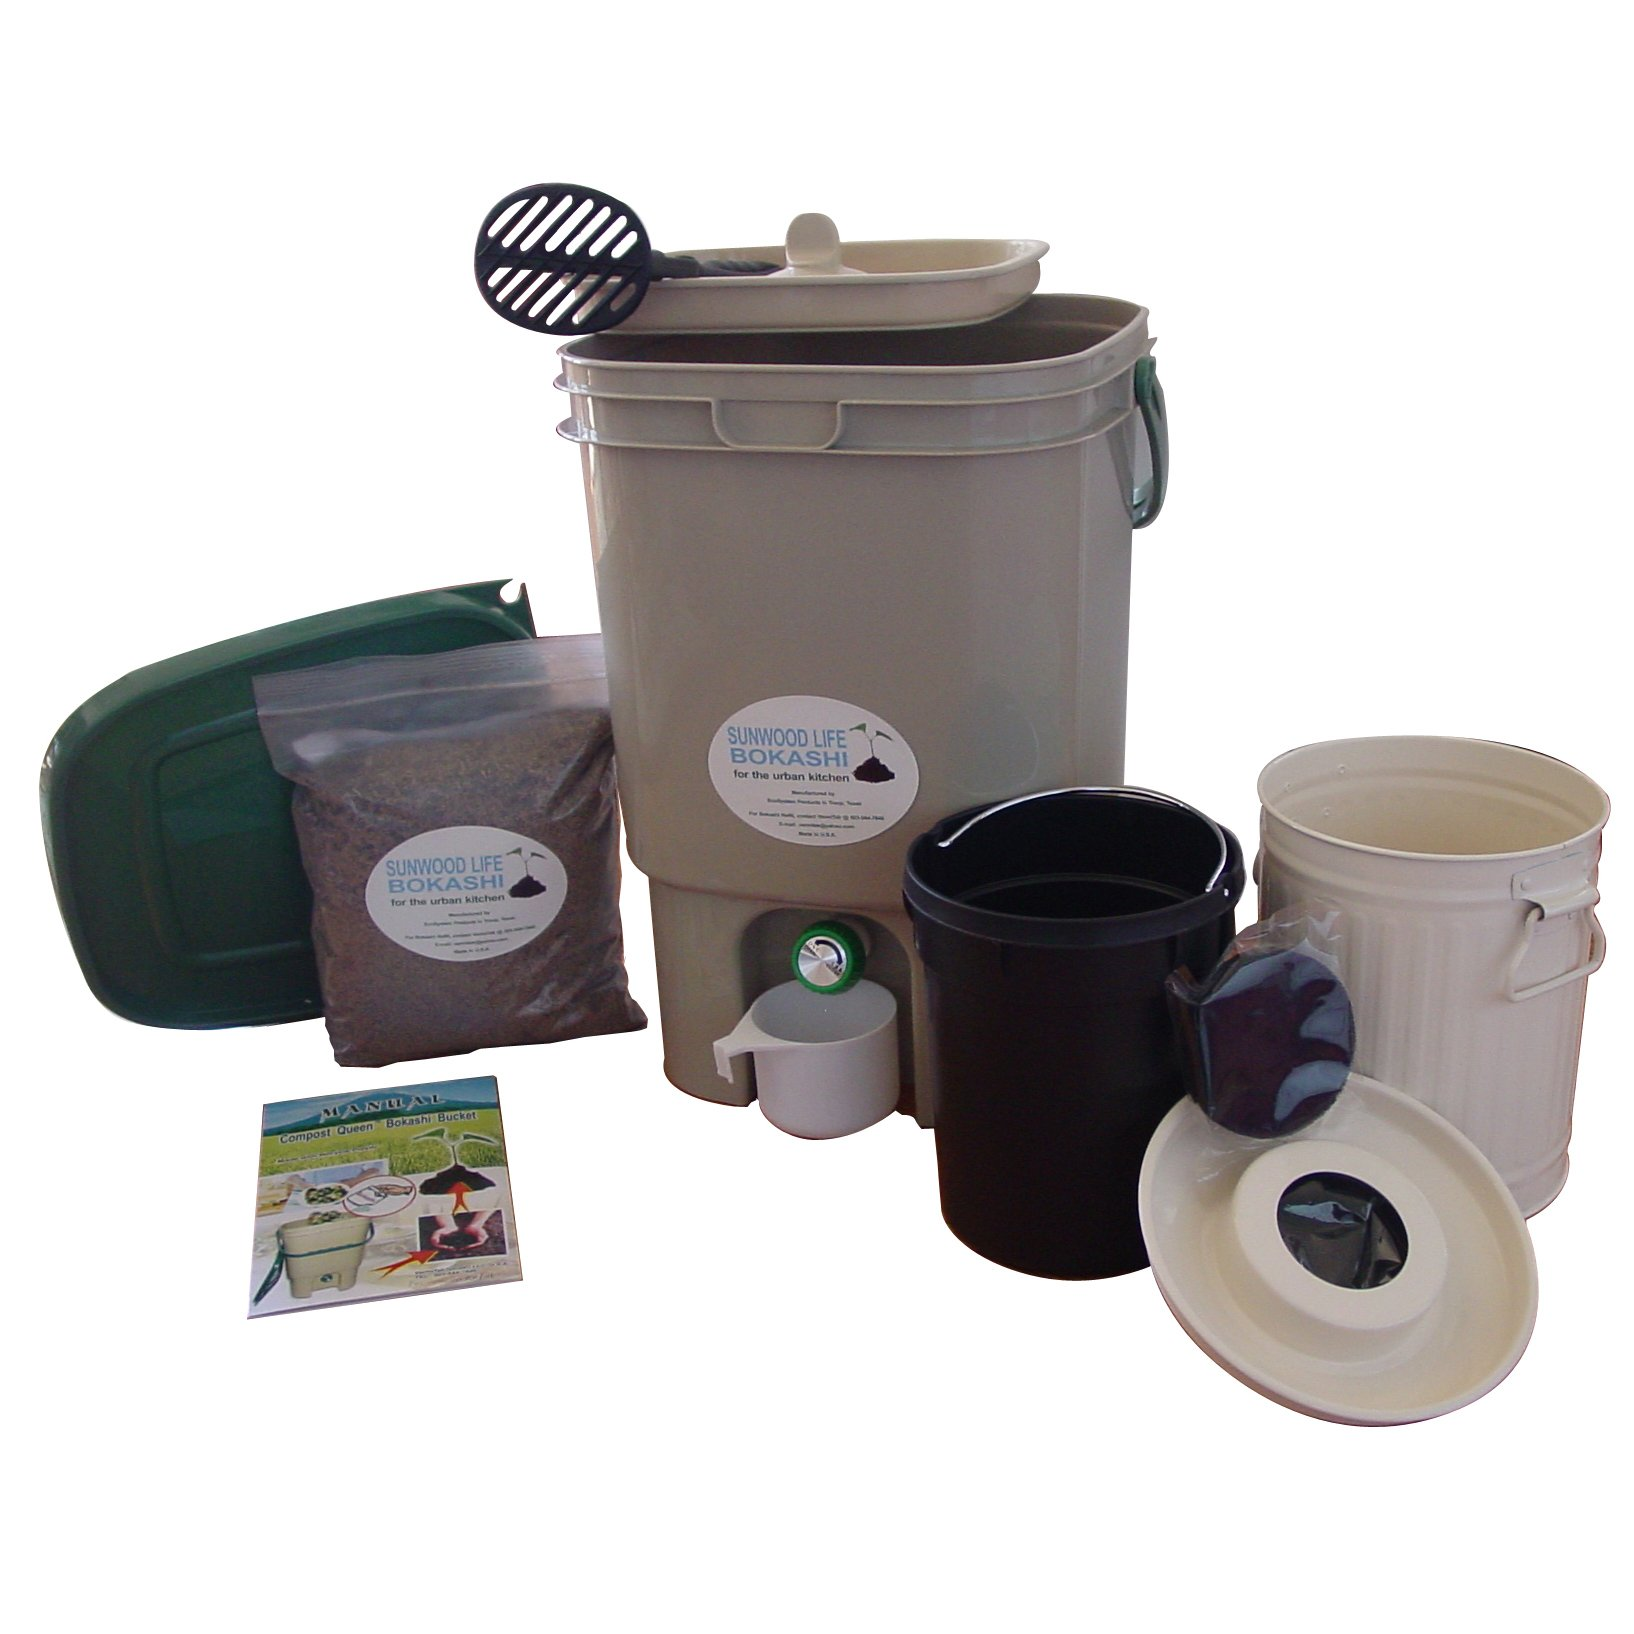 Sunwood Life Bokashi Compost Kit by Sunwood Life